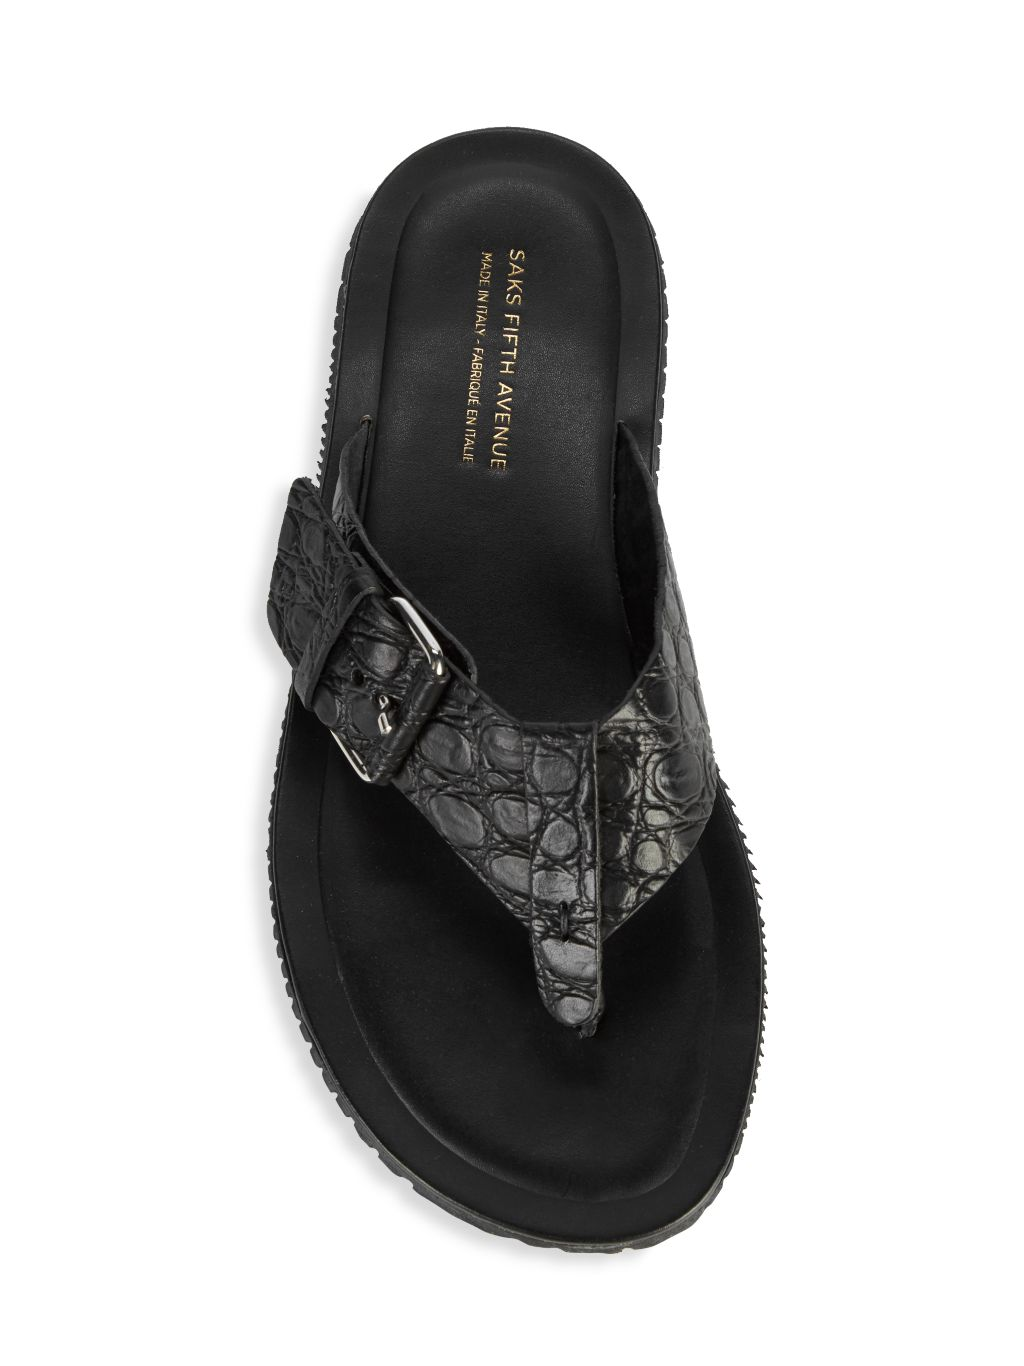 Saks Fifth Avenue Made in Italy Embossed Leather Flip Flops